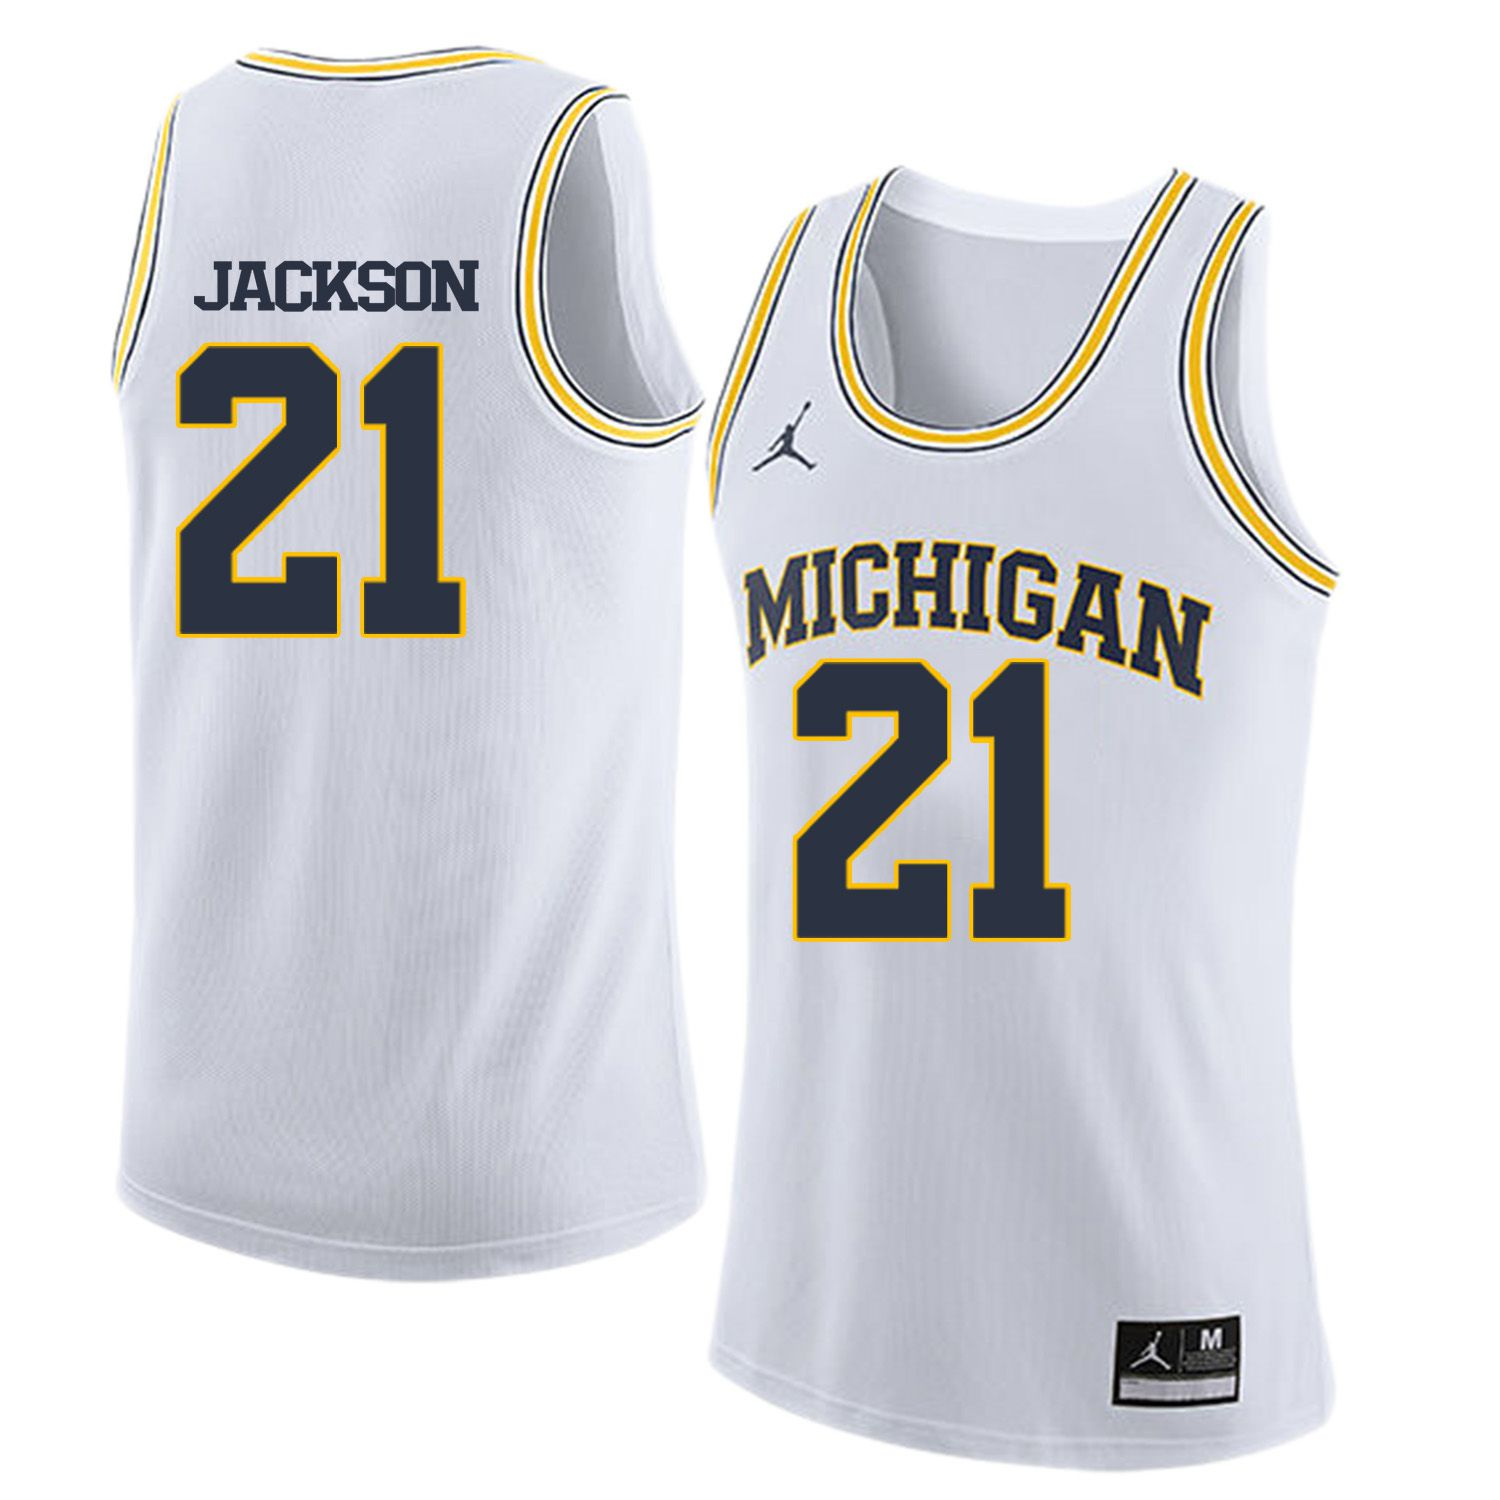 Men Jordan University of Michigan Basketball White 21 Jackson Customized NCAA Jerseys